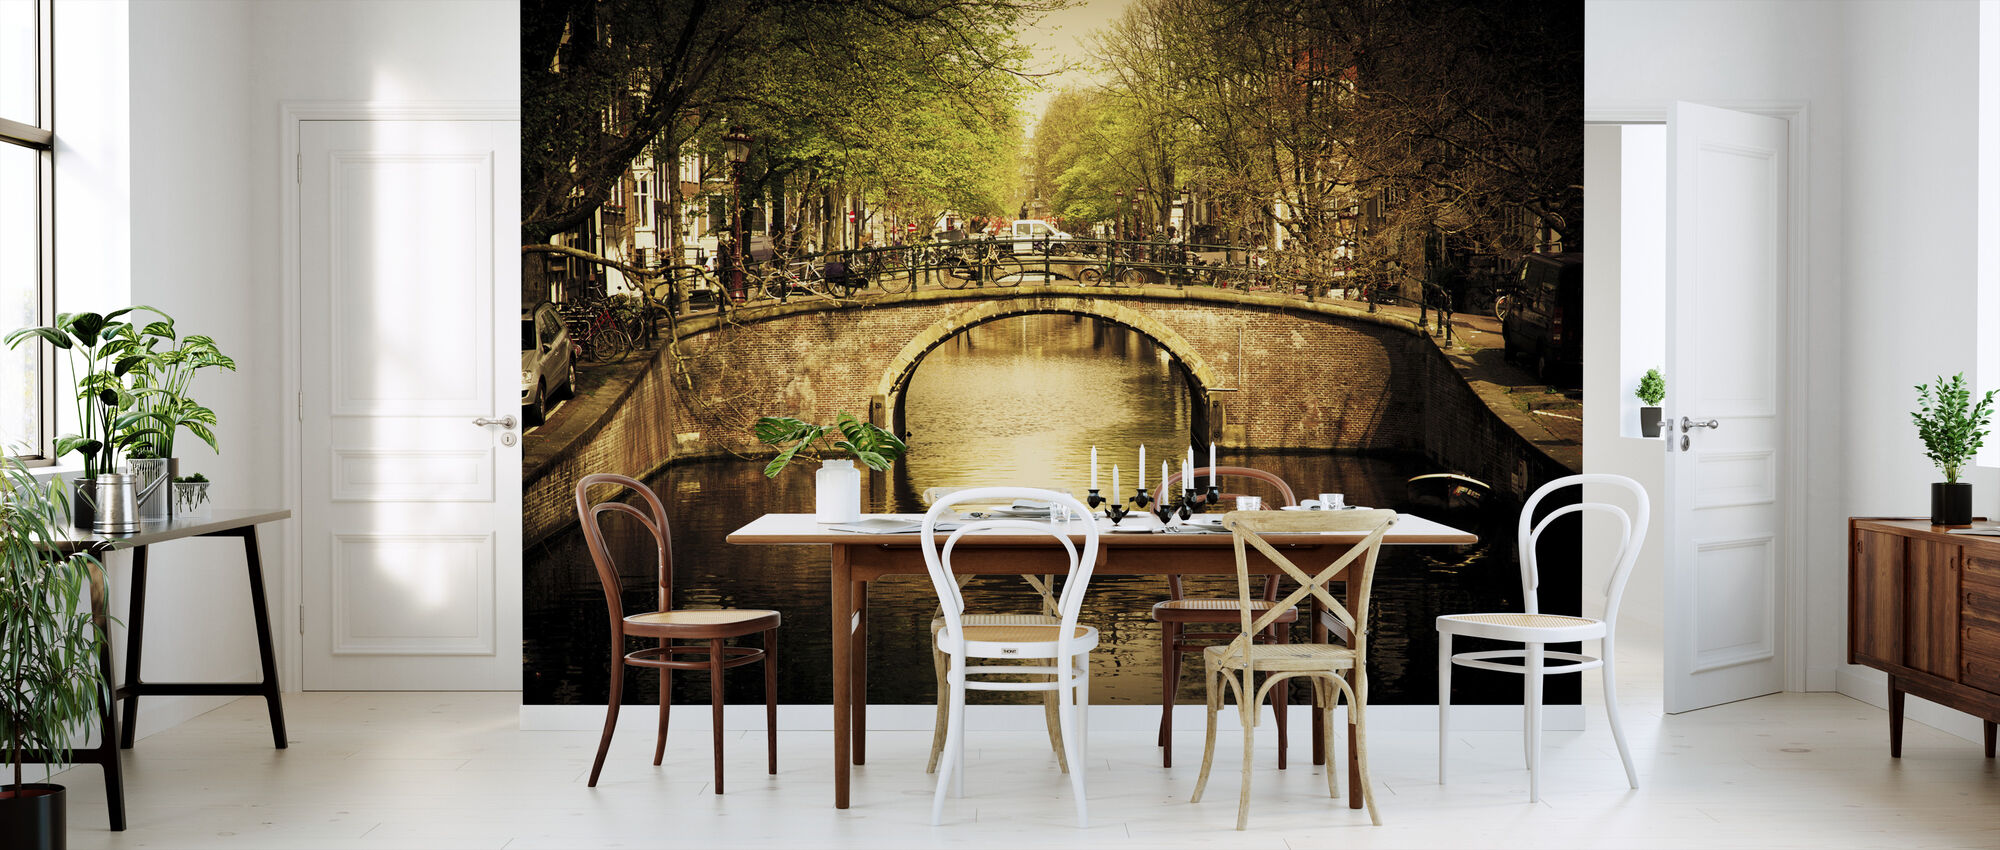 Romantic Bridge Over Canal in Amsterdam - Wallpaper - Kitchen